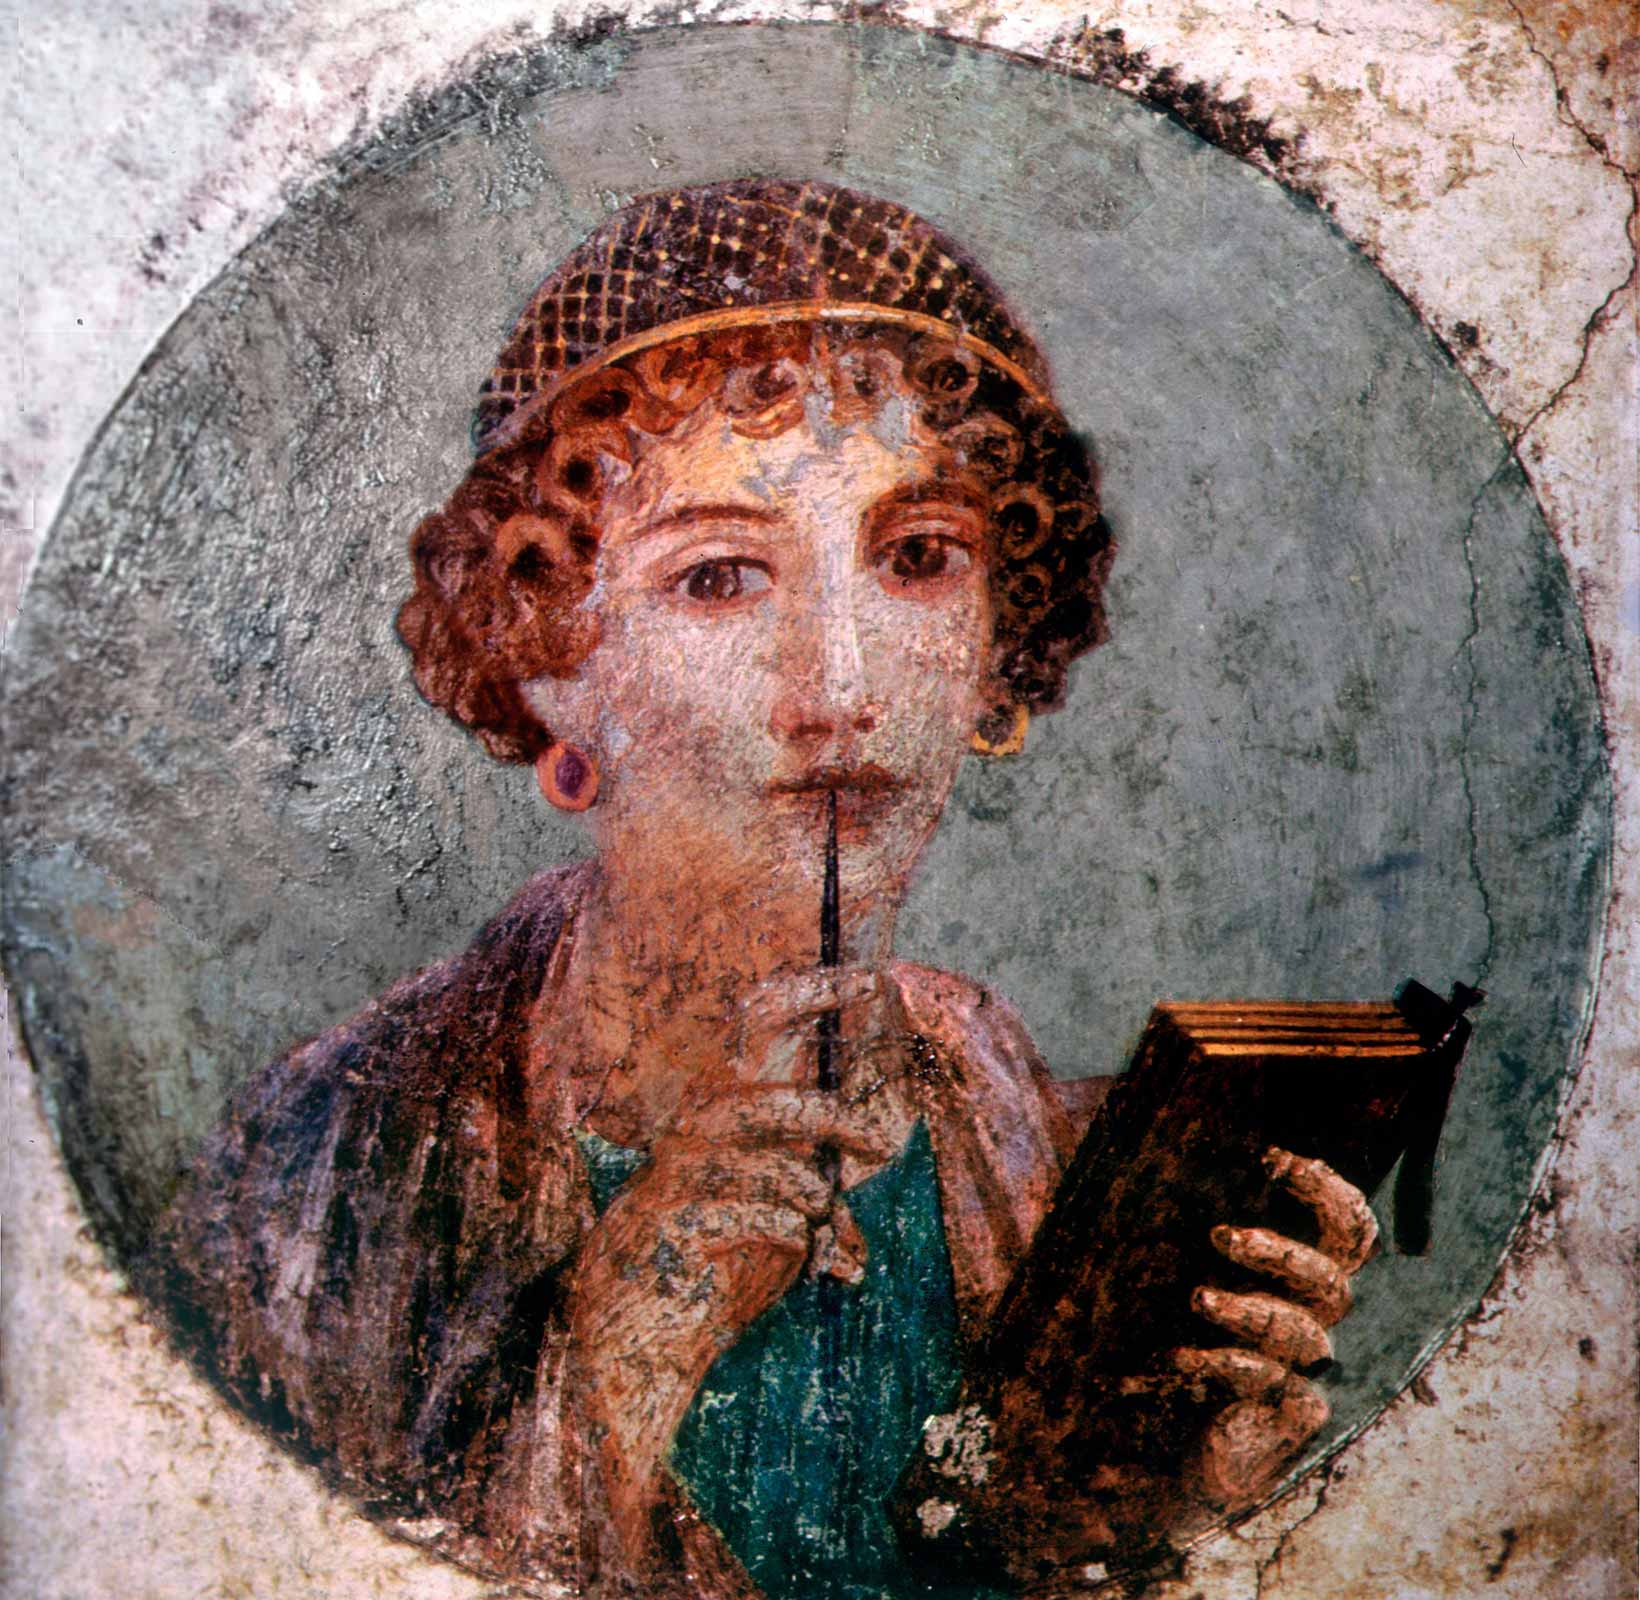 Portrait of Sappho by unknown artist in Campania, Italy C First century